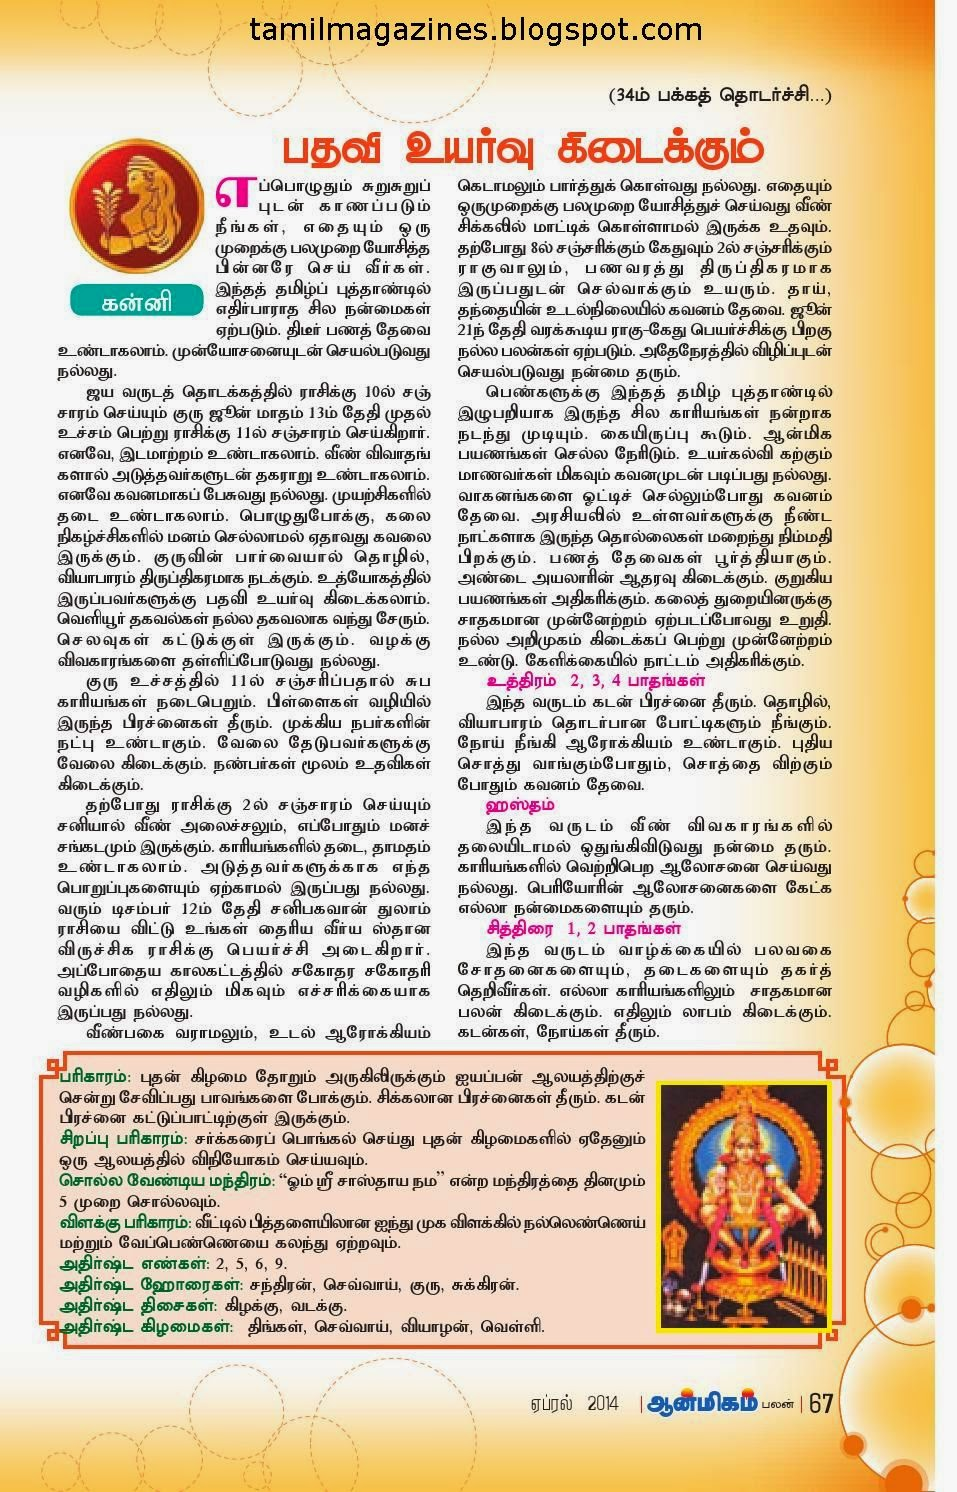 Tamil New Year 2014 Rasi Palan Collections Rasi Palan 2014 In Tamil